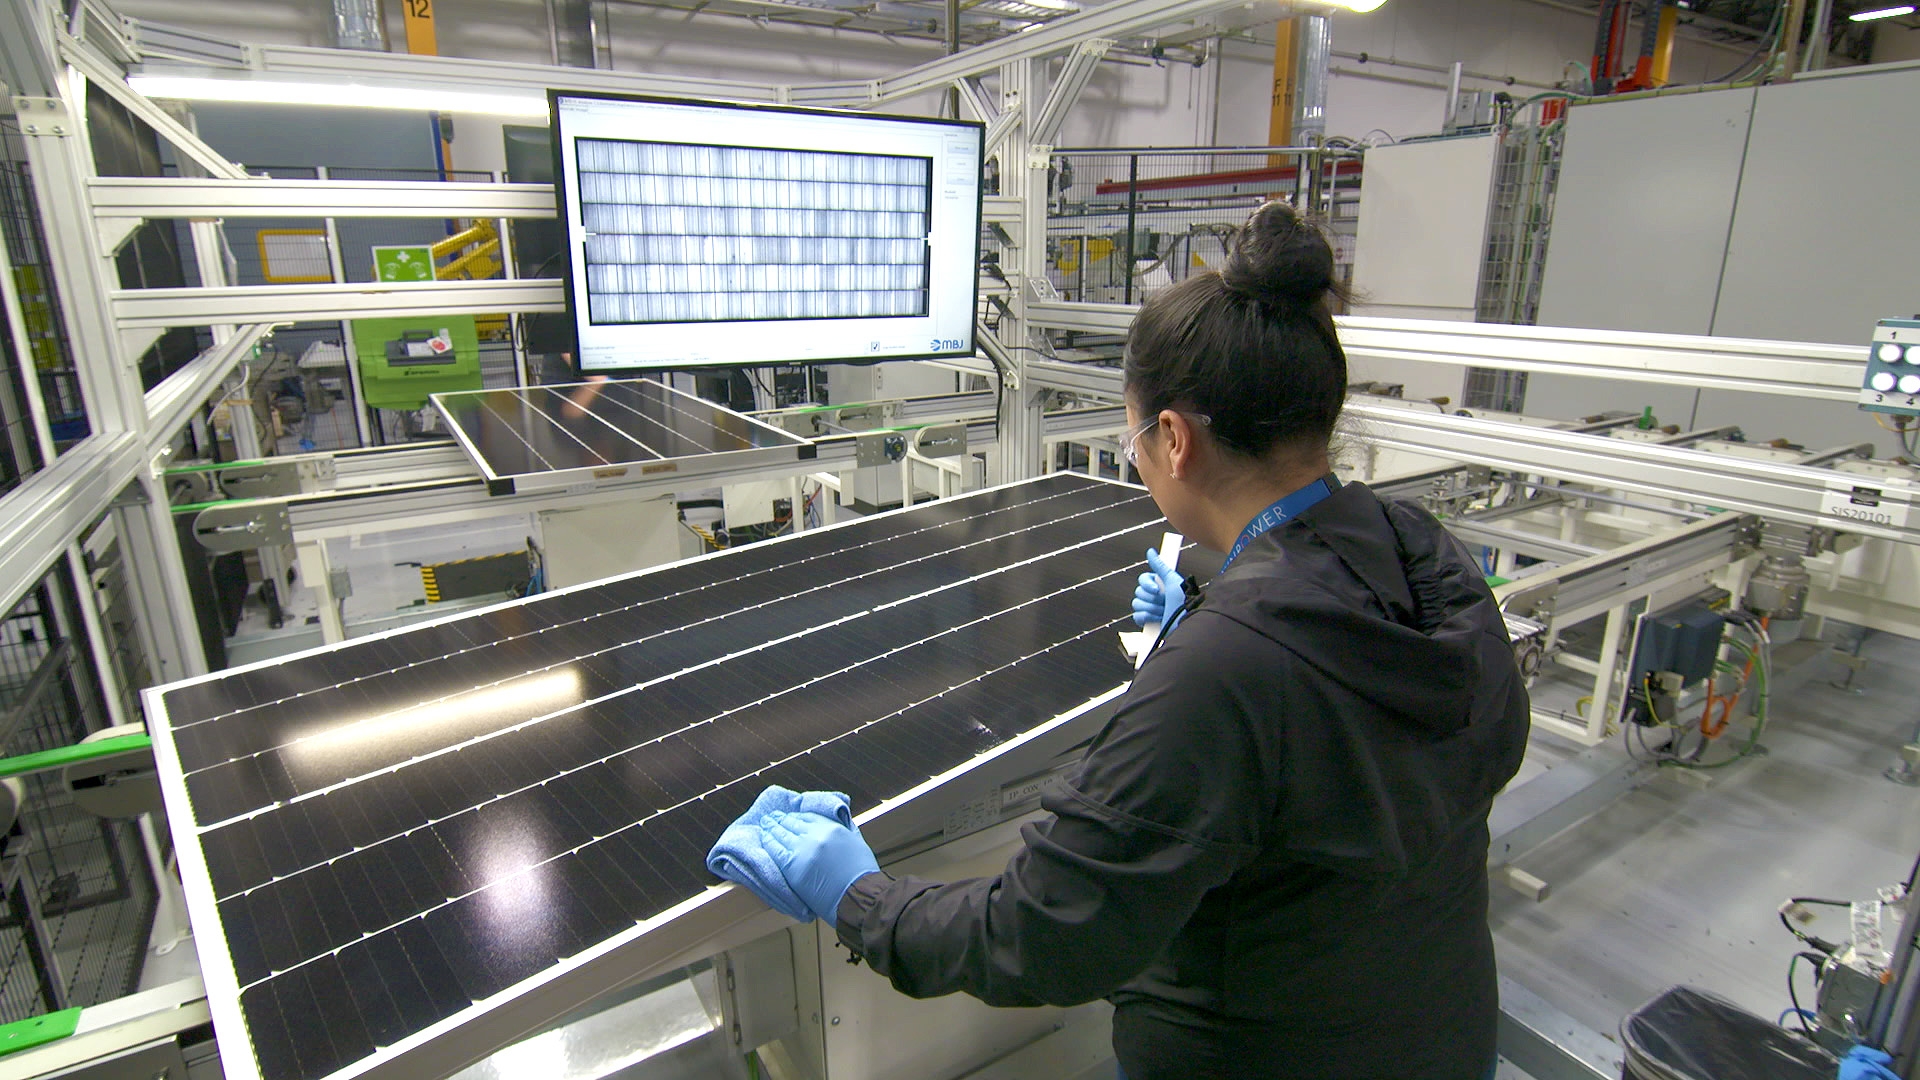 The former SolarWorld Americas facility has been converted to produce SunPower's P Series (19% plus) conversion efficiency modules using its patented 'shingle' cell interconnect technology boosting performance of P-type monocrystalline PERC (Passivated Emitter Rear Cell) technology. Image: SunPower